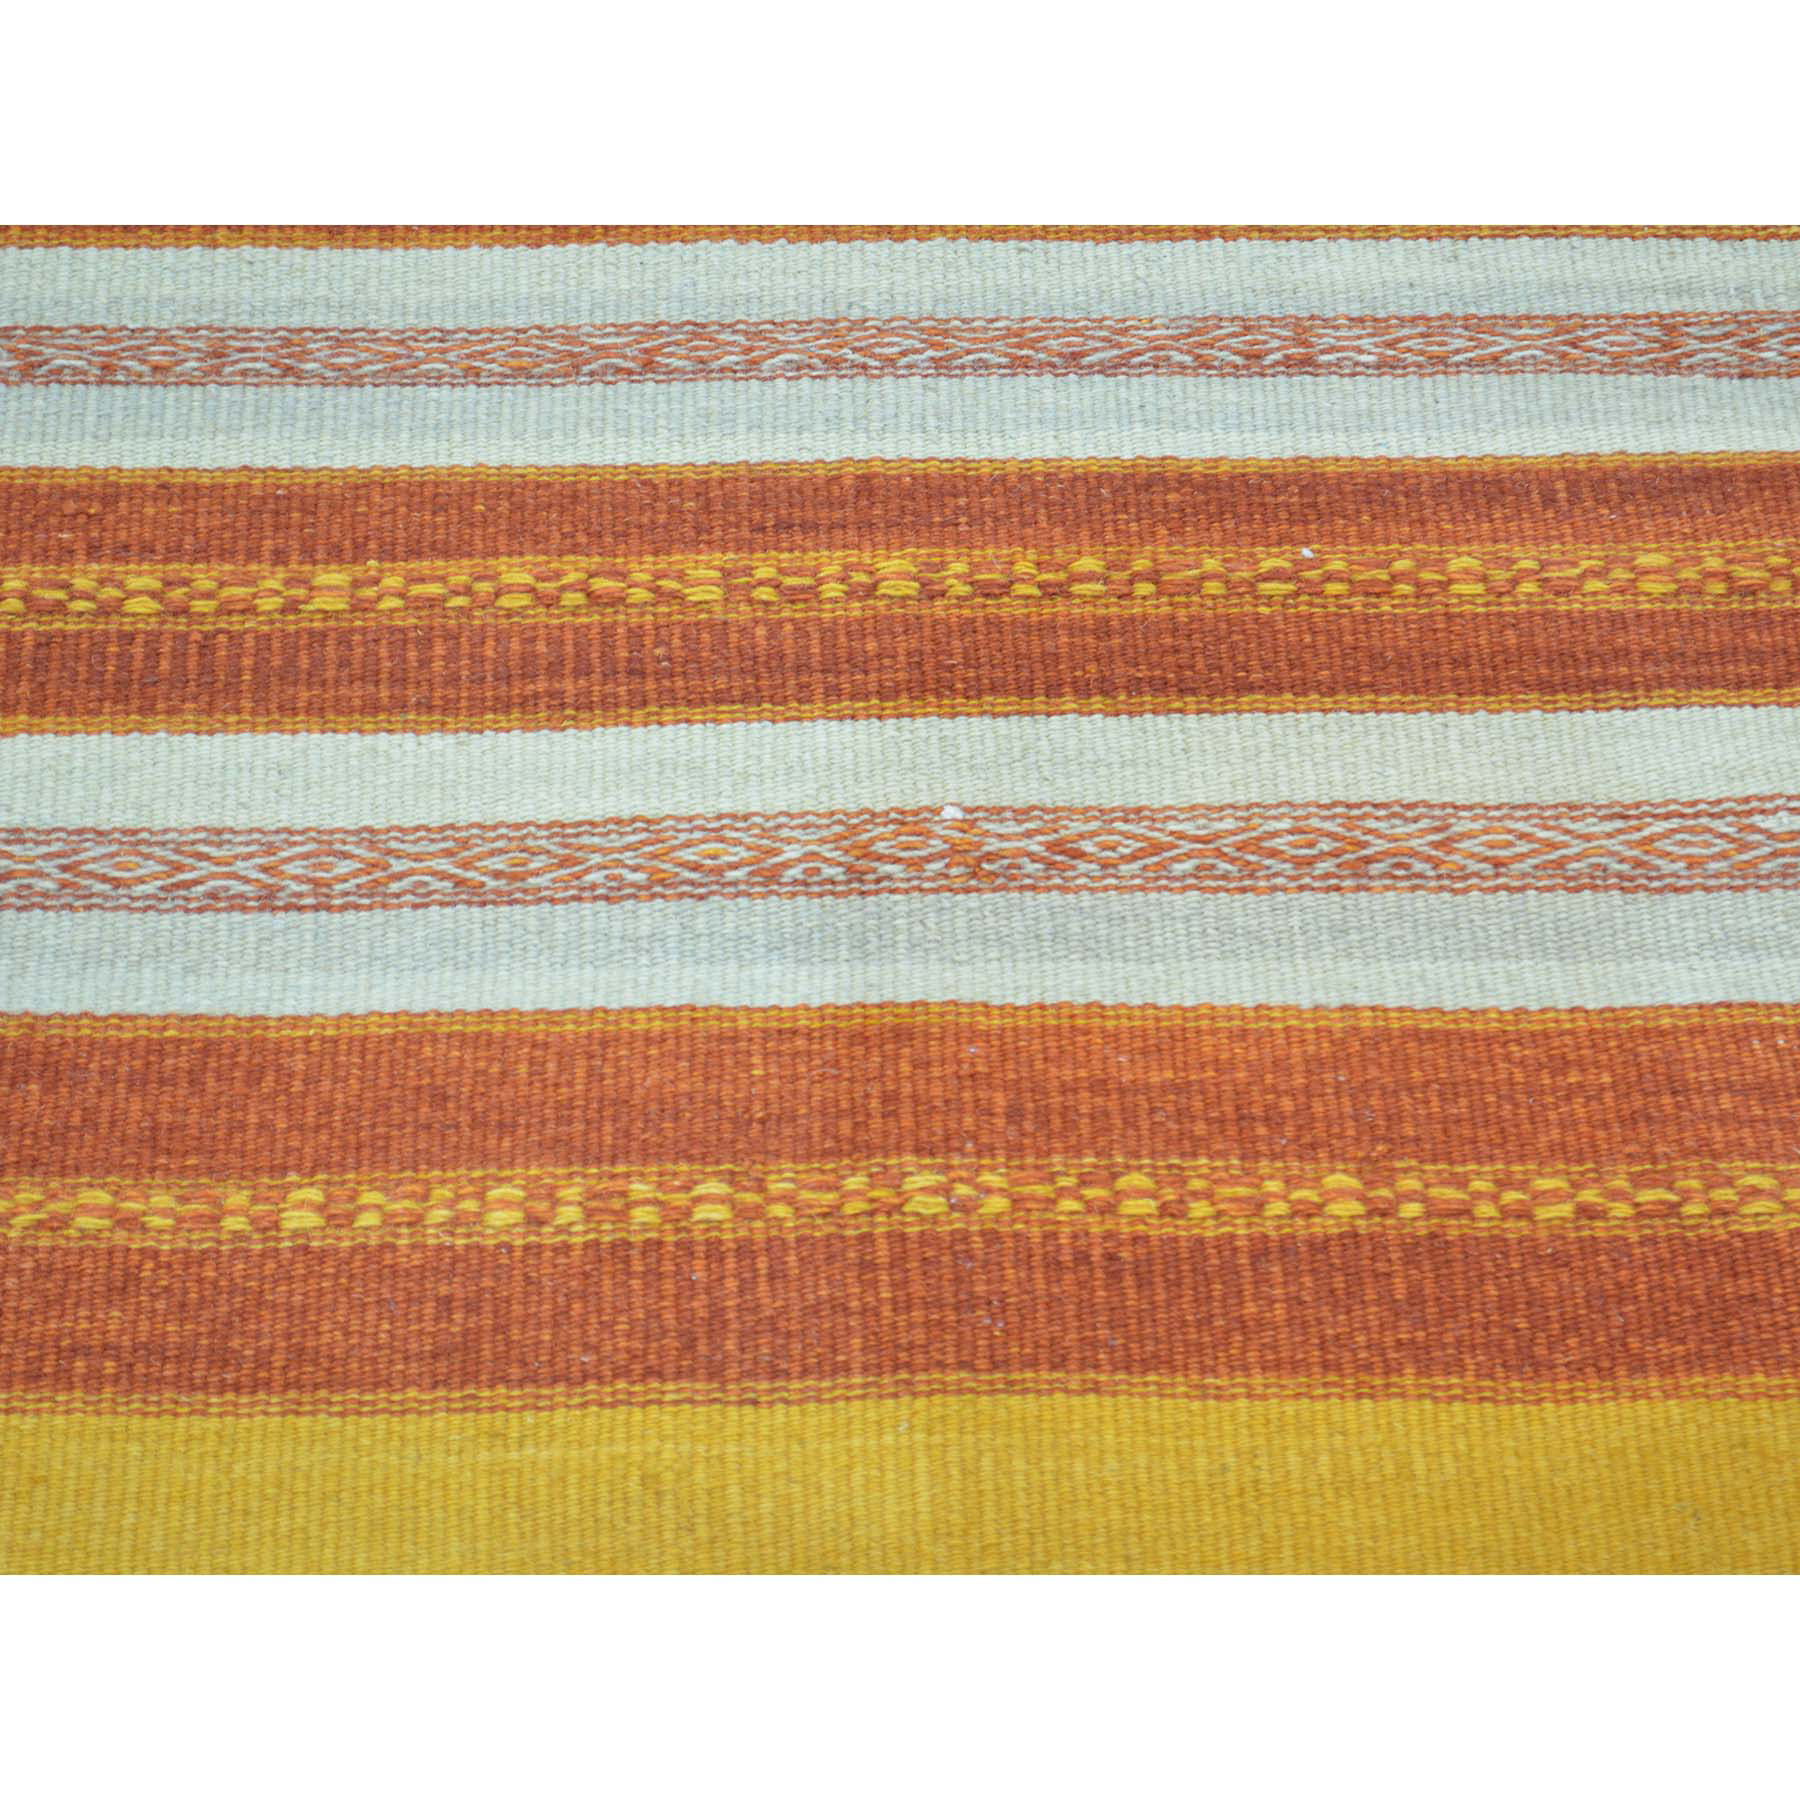 2-10 x4-9  Hand Woven Pure Wool Durie Kilim Striped Oriental Rug